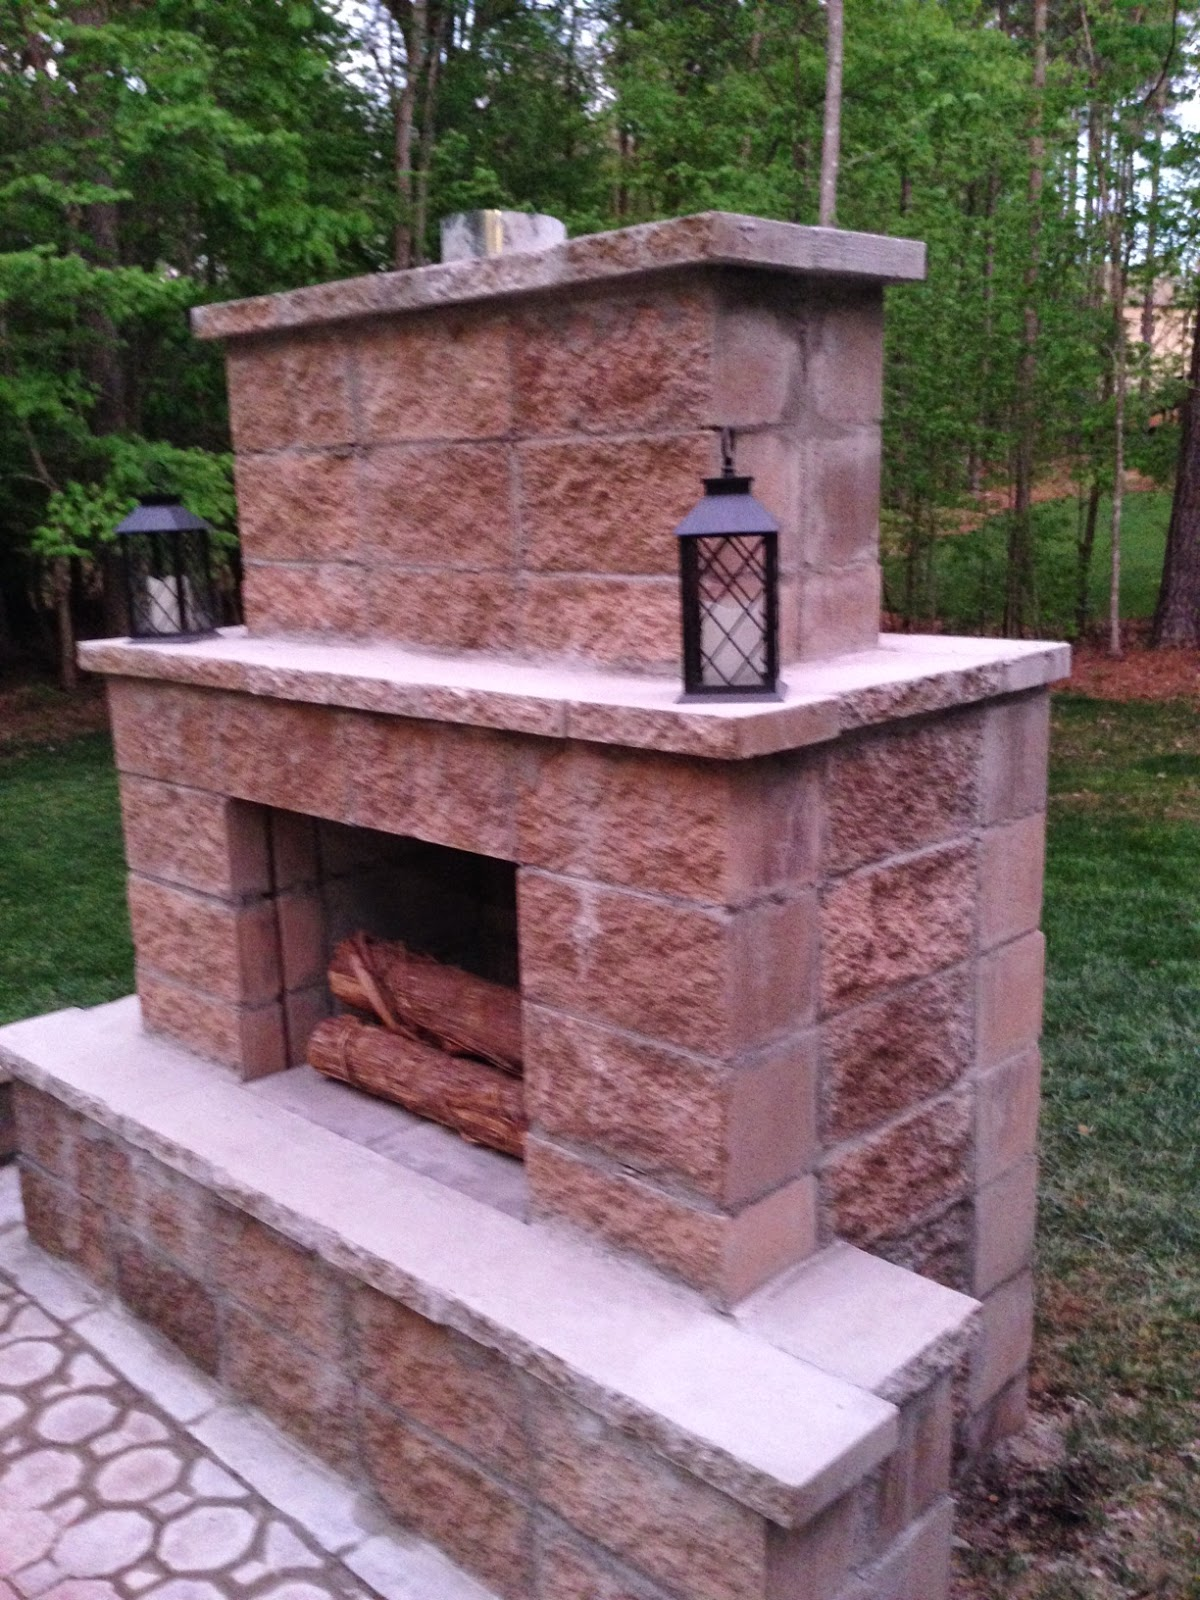 Life in the barbie dream house diy paver patio and for Outside fireplace plans